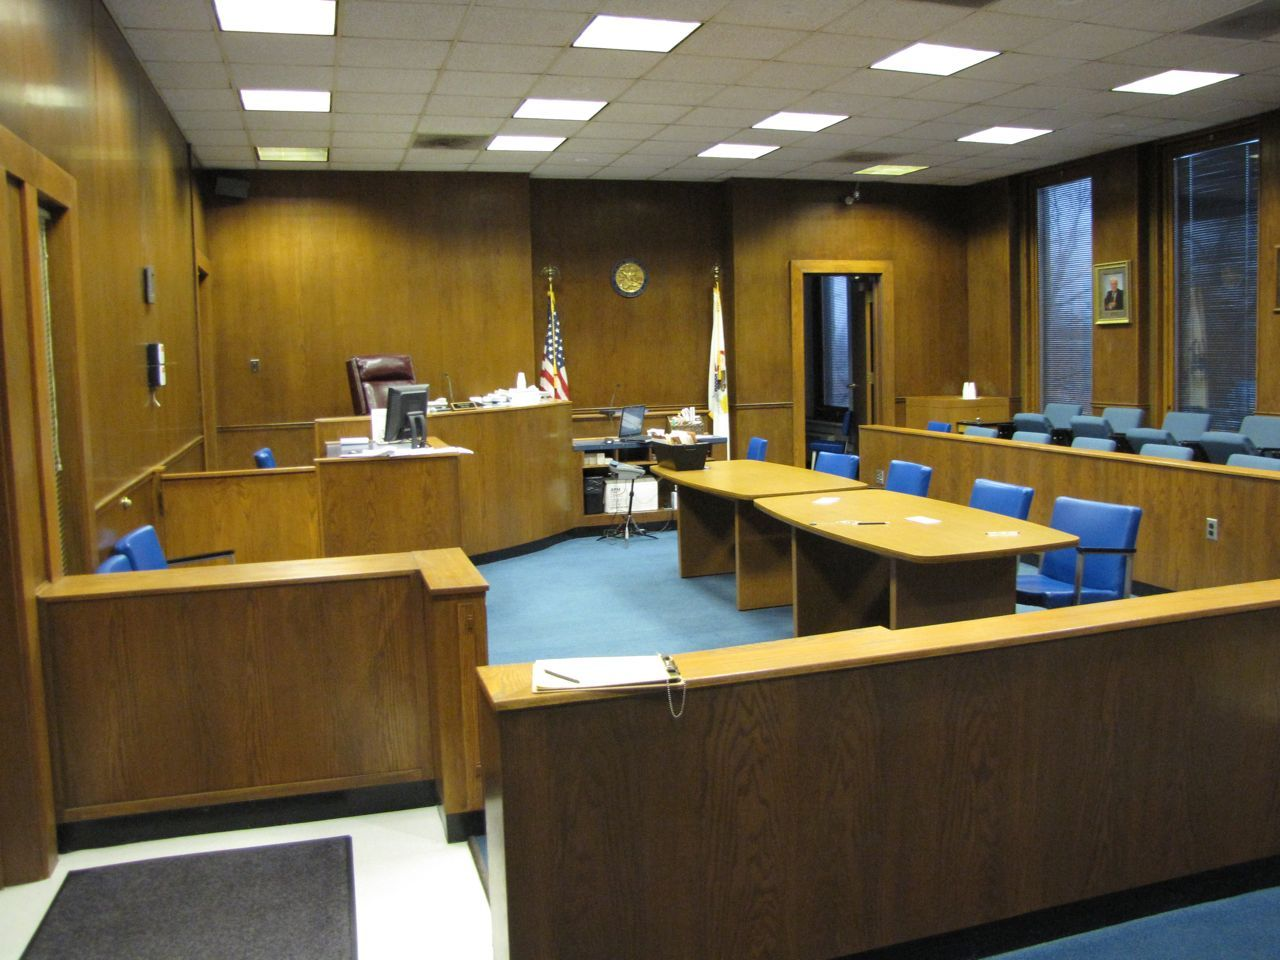 Courtroom A on the third floor